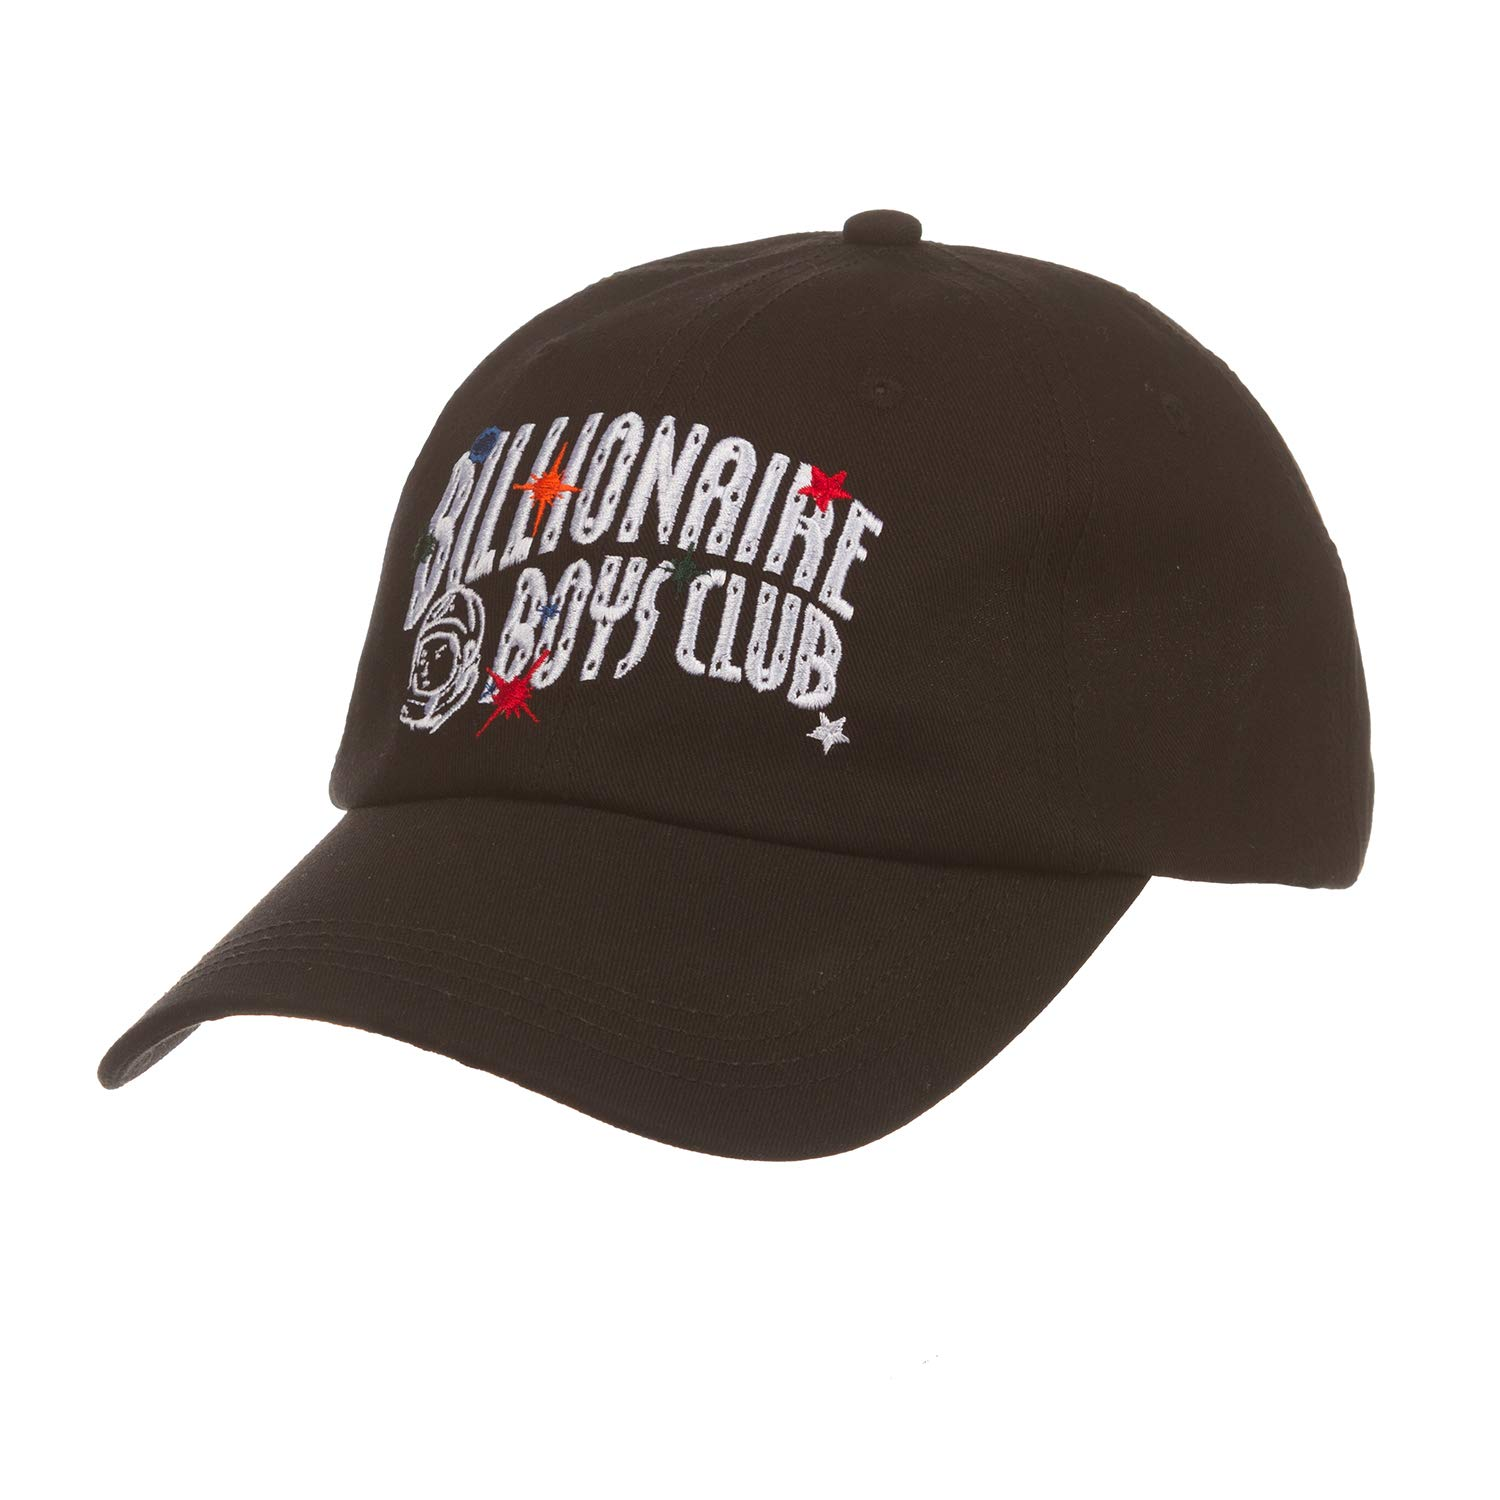 Billionaire Boys Club BB Stars Hat in Red & Black 891-2801 (Black, One Size)